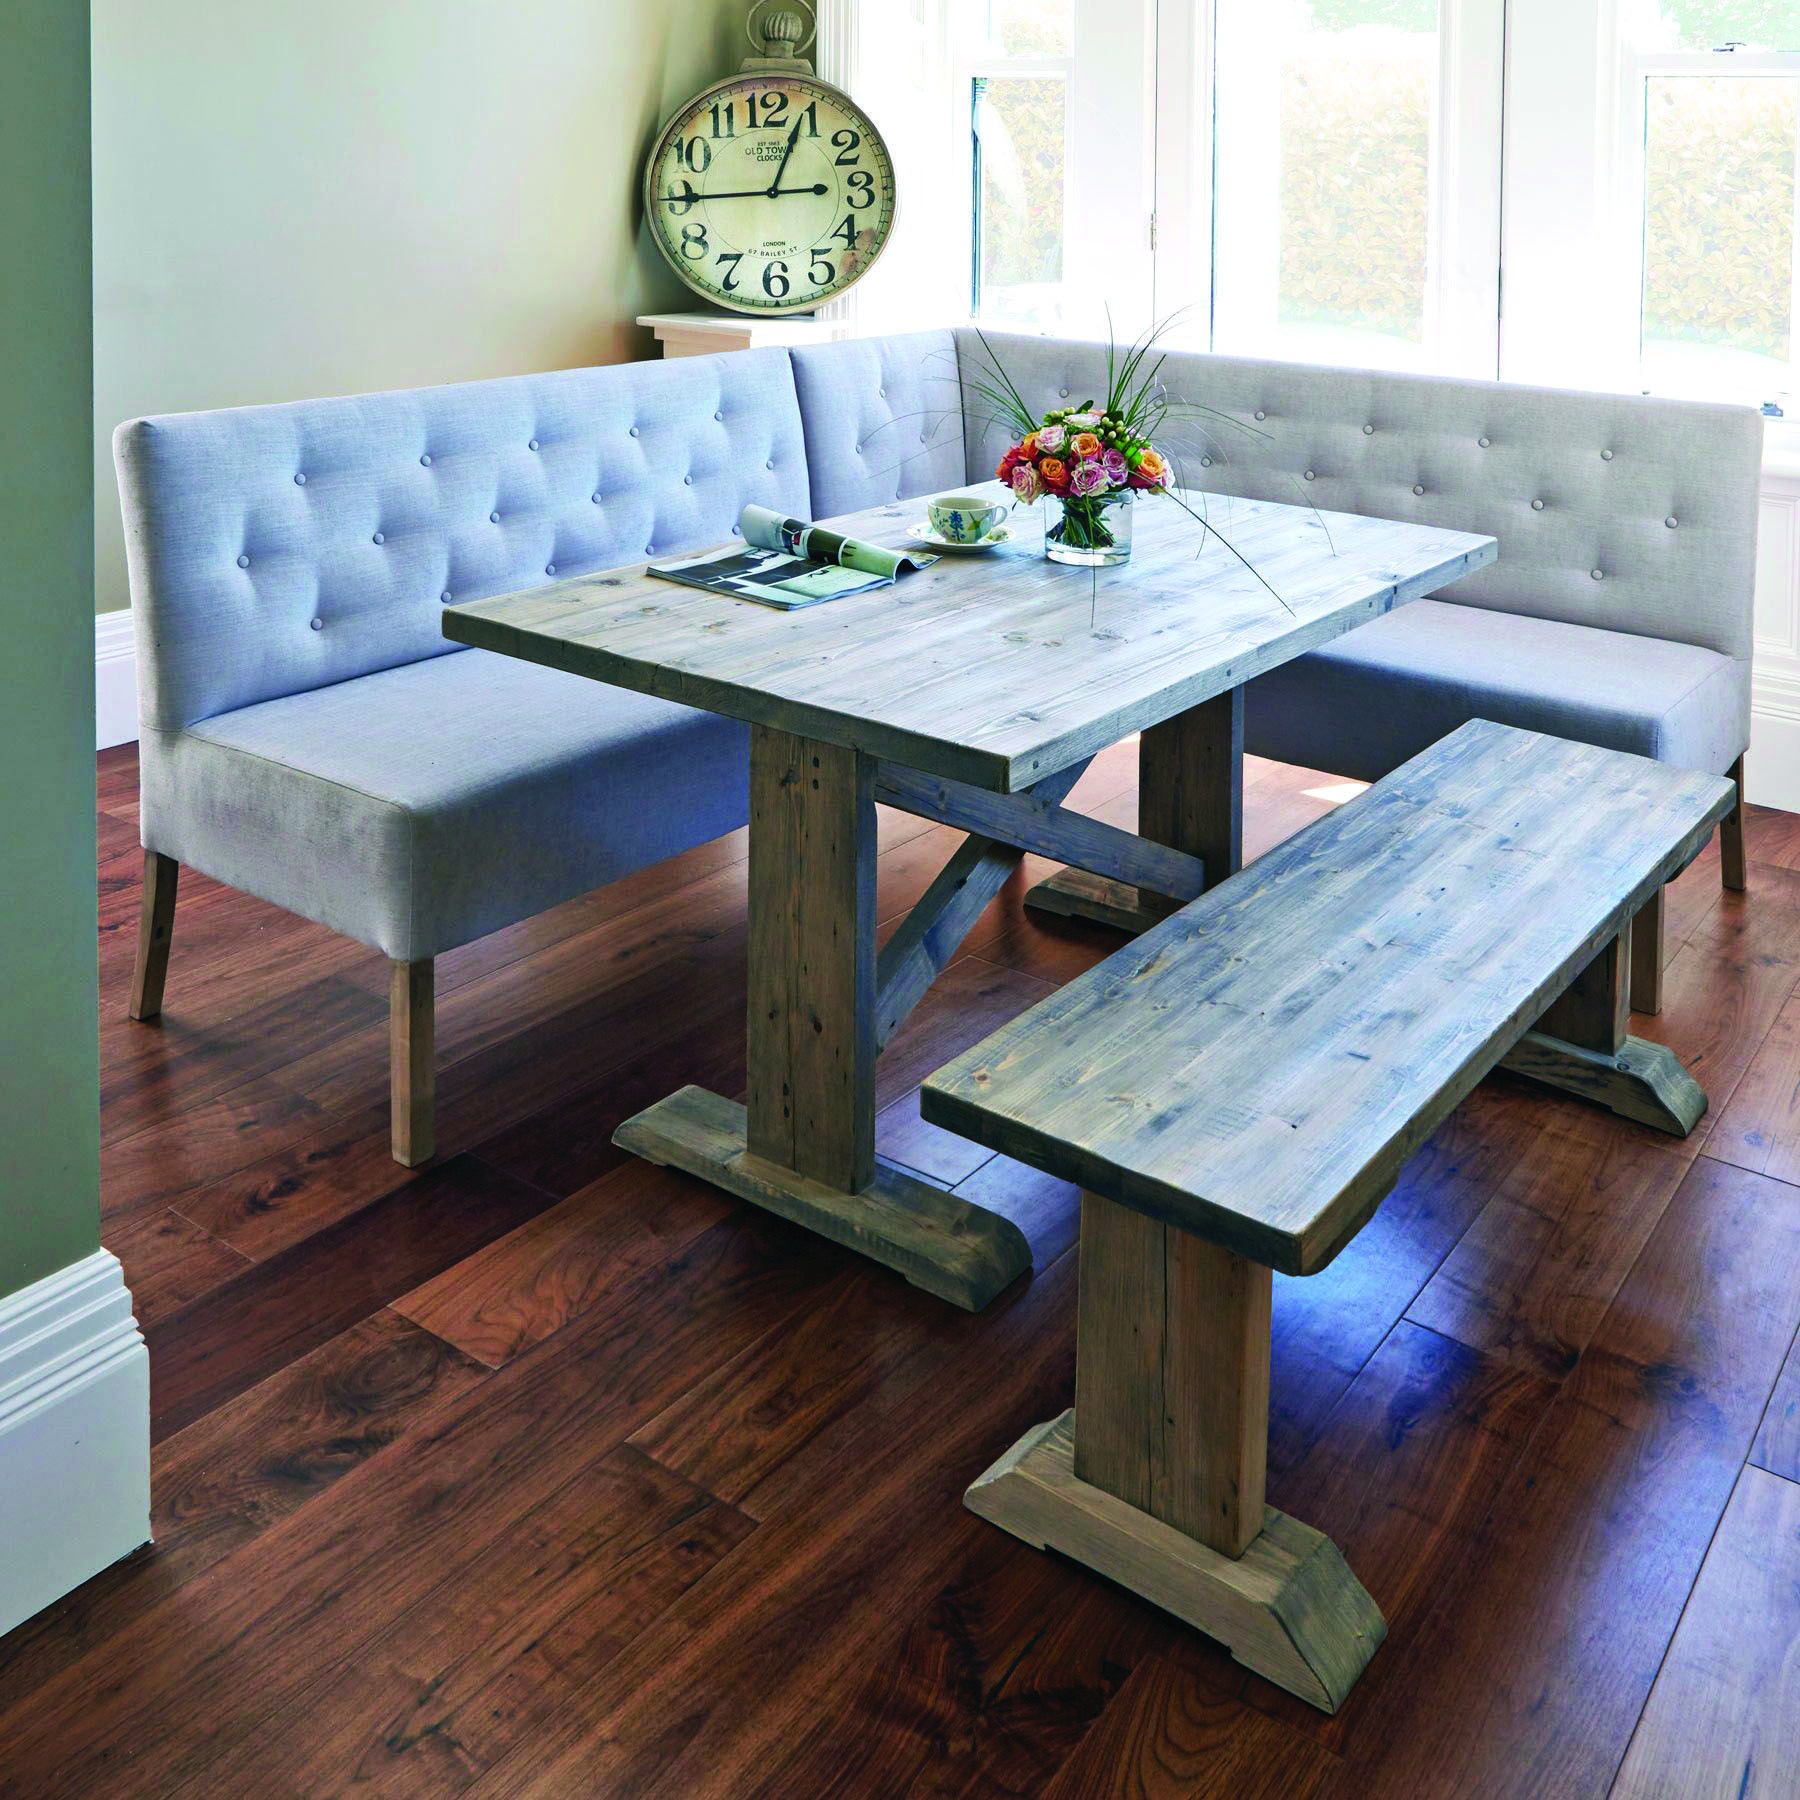 Wonderful Small Dining Room Table With 2 Chairs For Your Cozy Home